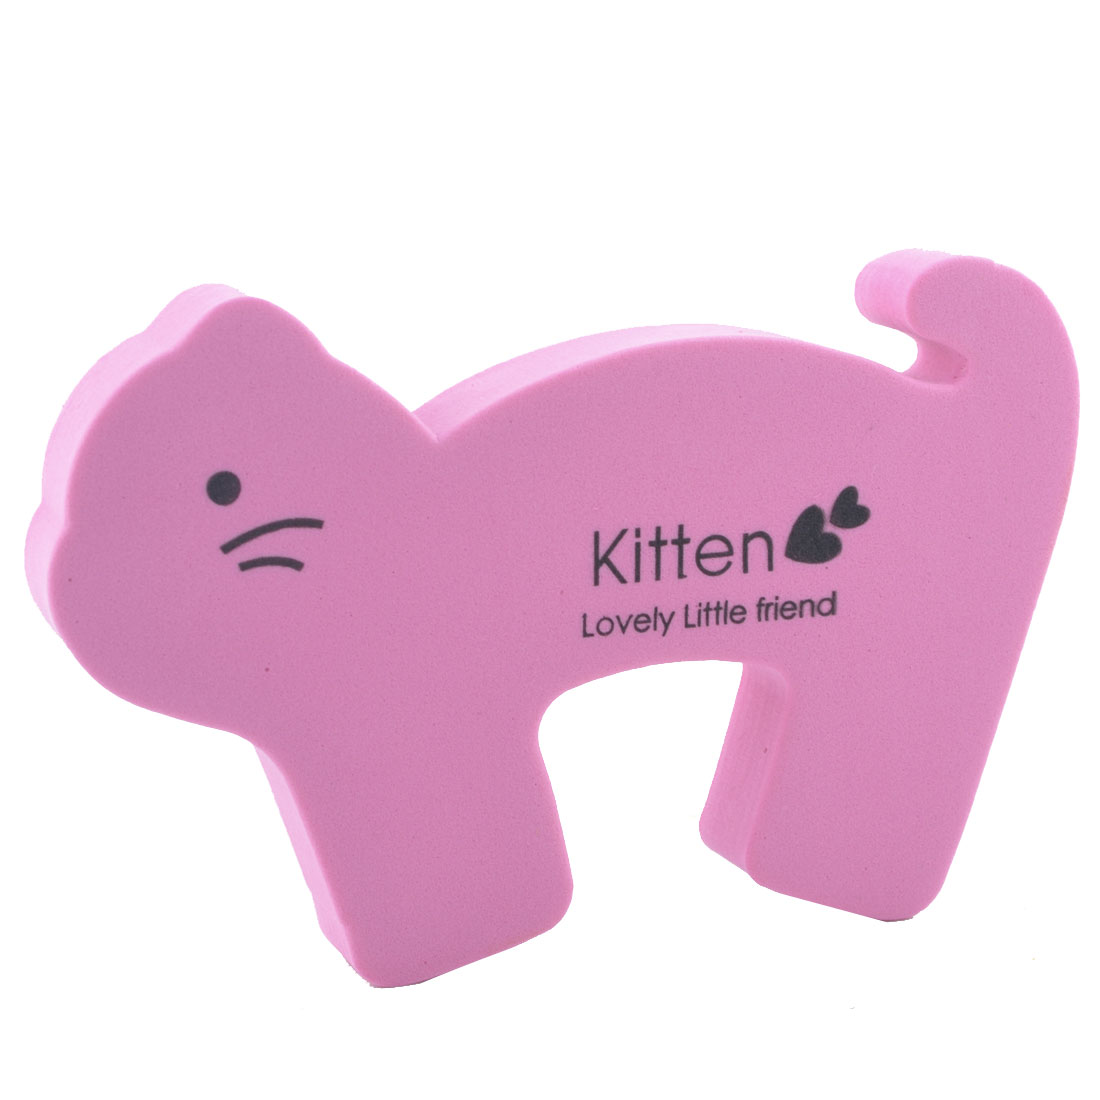 EVA Cartoon Pink Kitten Shape Finger Safety Guard Doorstop Door Stopper Lock